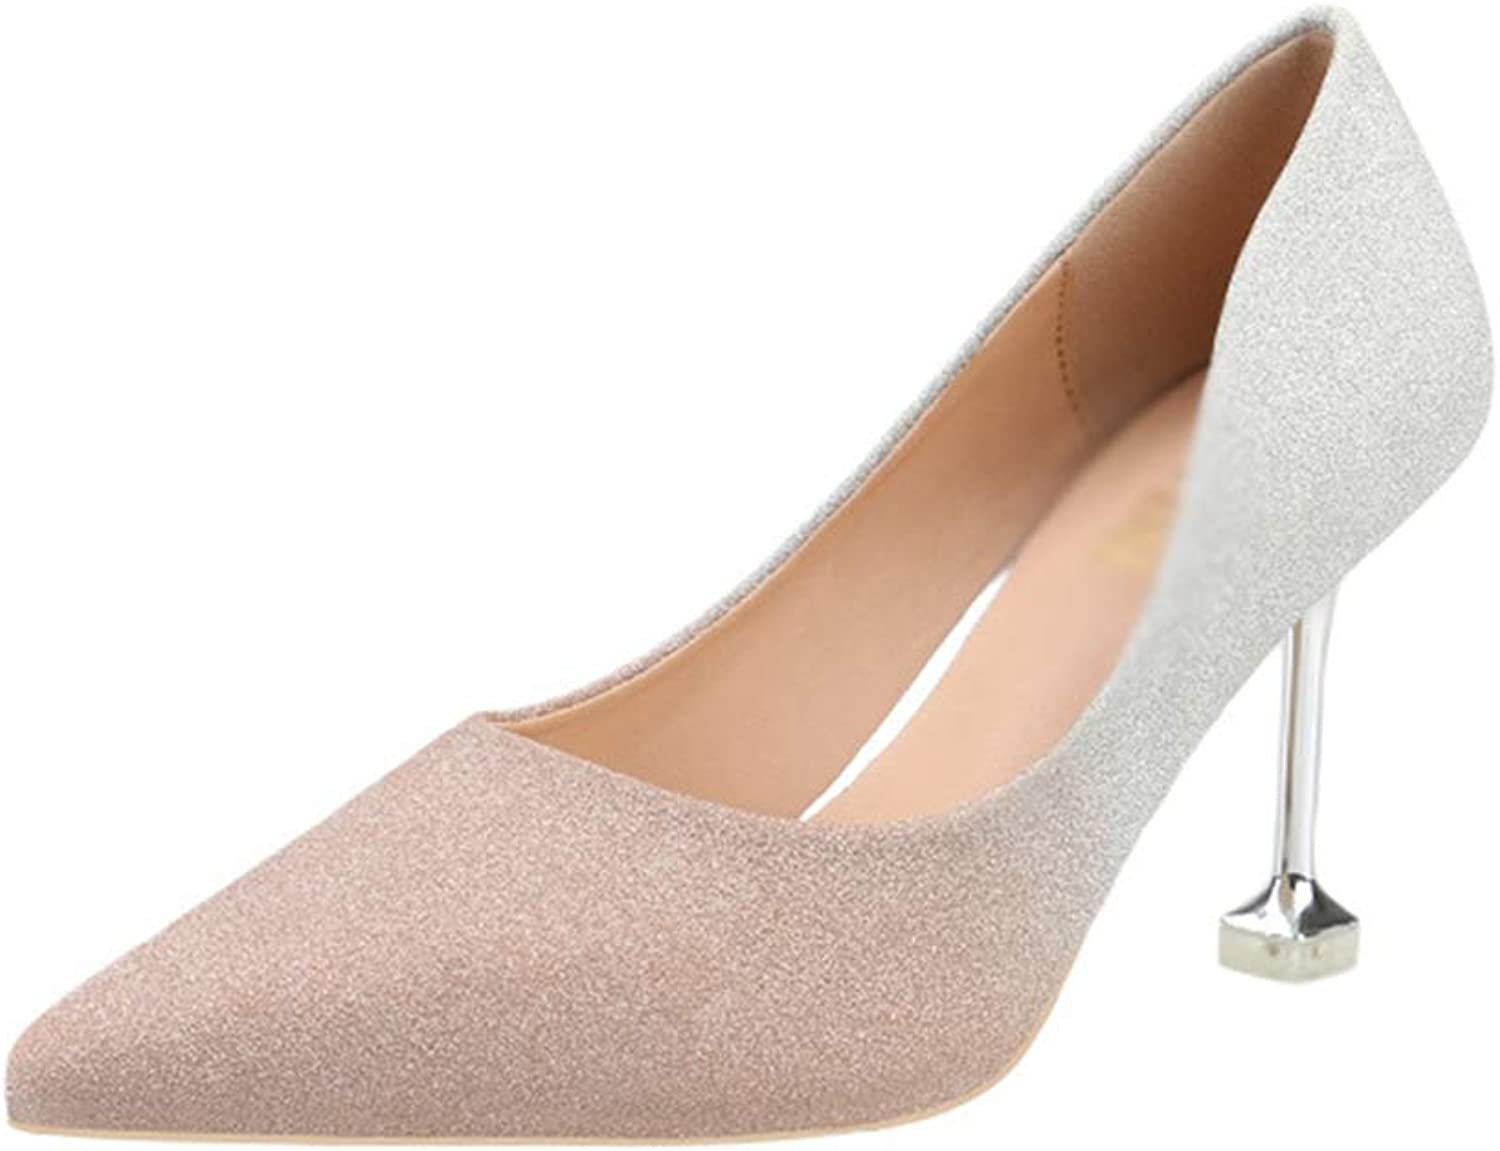 Drew Toby Women Pumps Gradient colors Sexy Shallow Mouth Pointed Toe Fashion High Heels